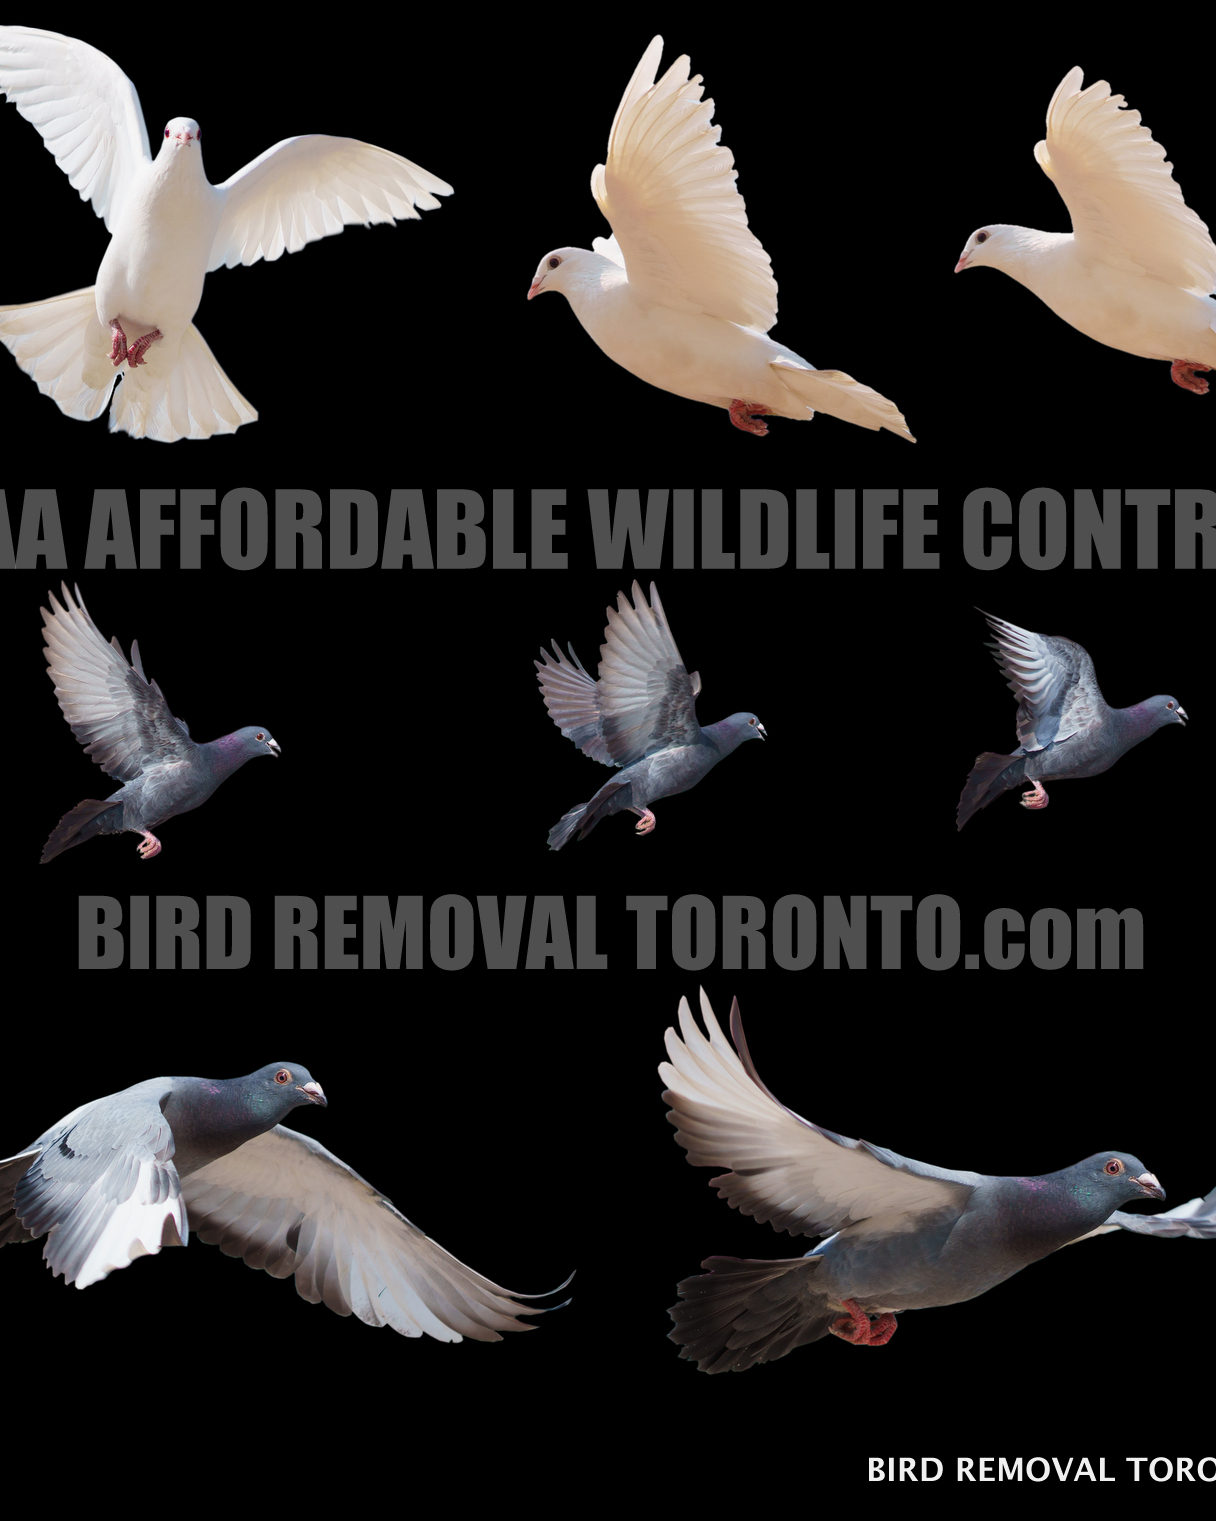 BIRD REMOVAL TORONTO - AAAAFFORDABLE WILDLIFE CONTROL